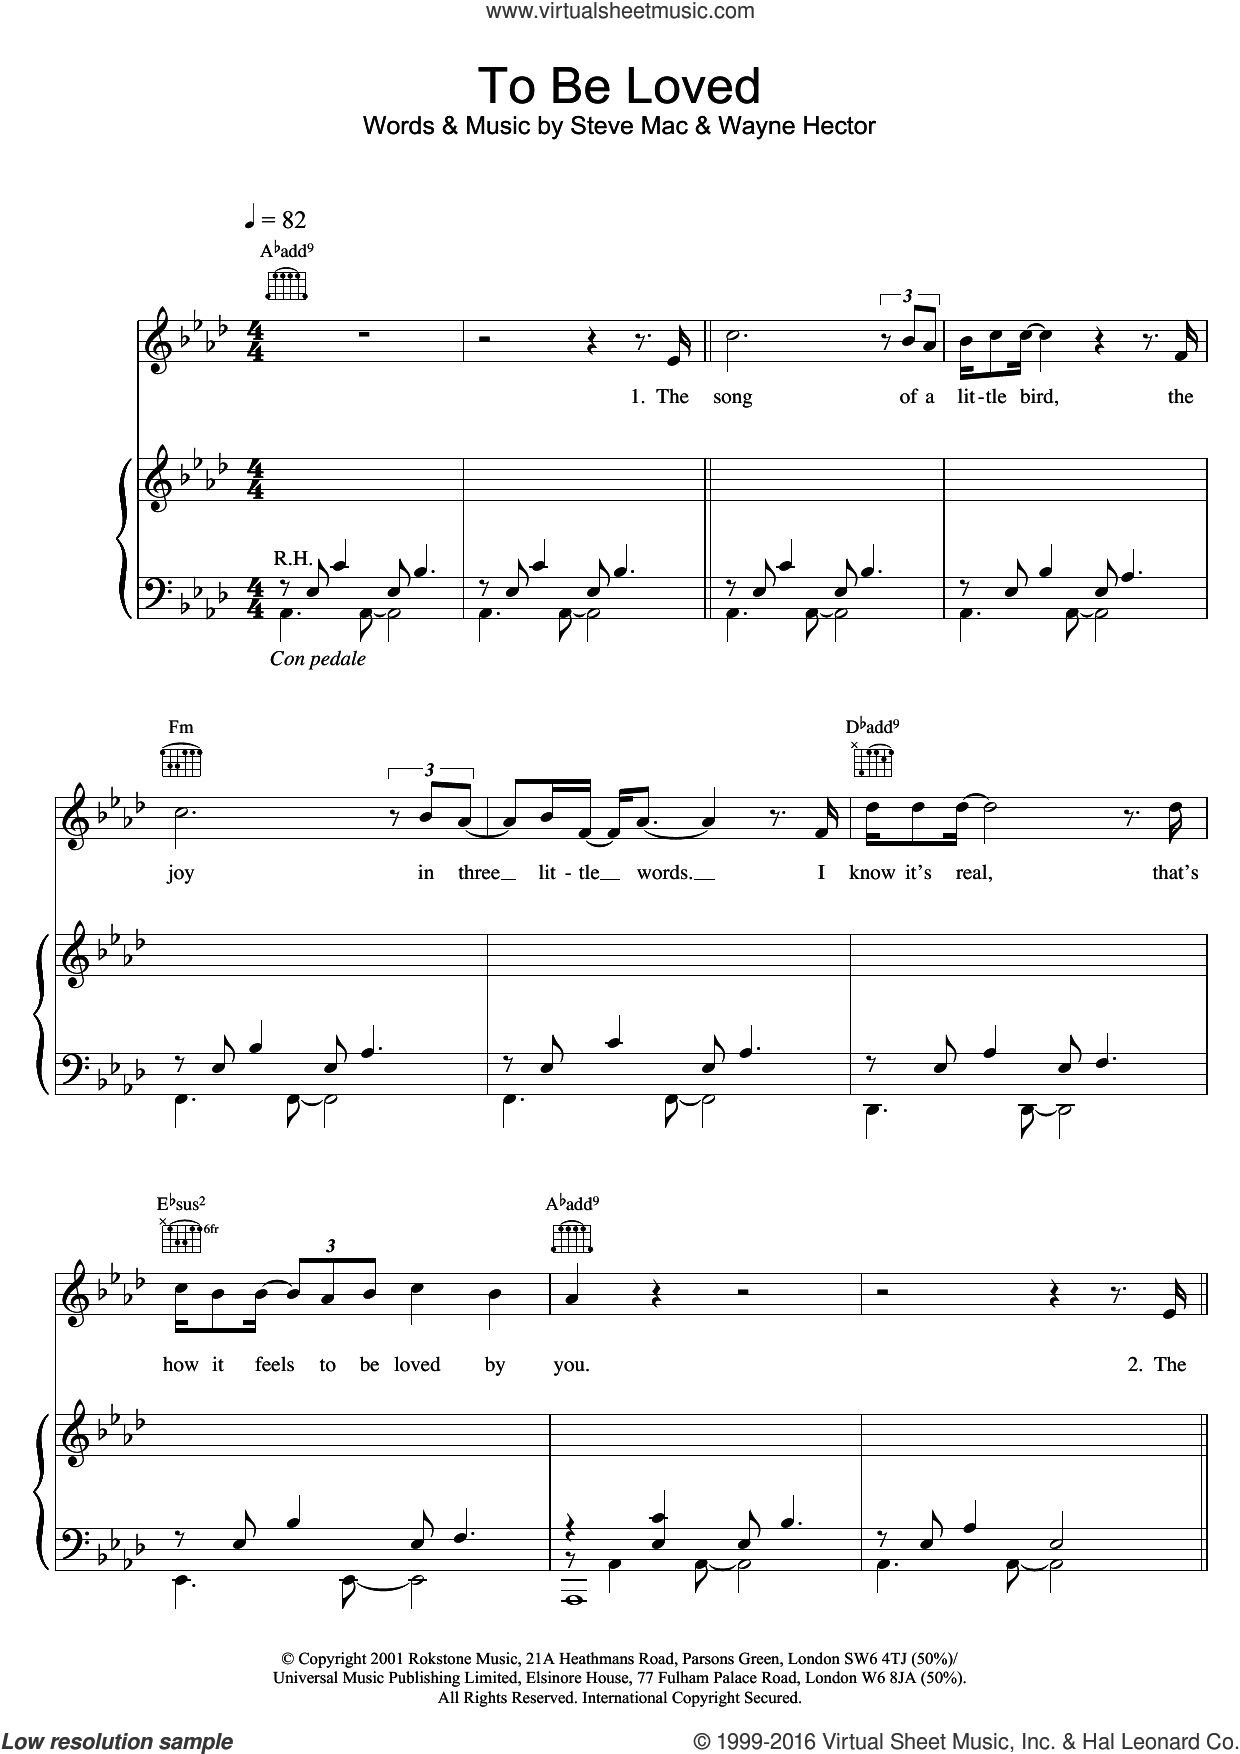 To Be Loved sheet music for violin solo by Wayne Hector, Westlife and Steve Mac. Score Image Preview.